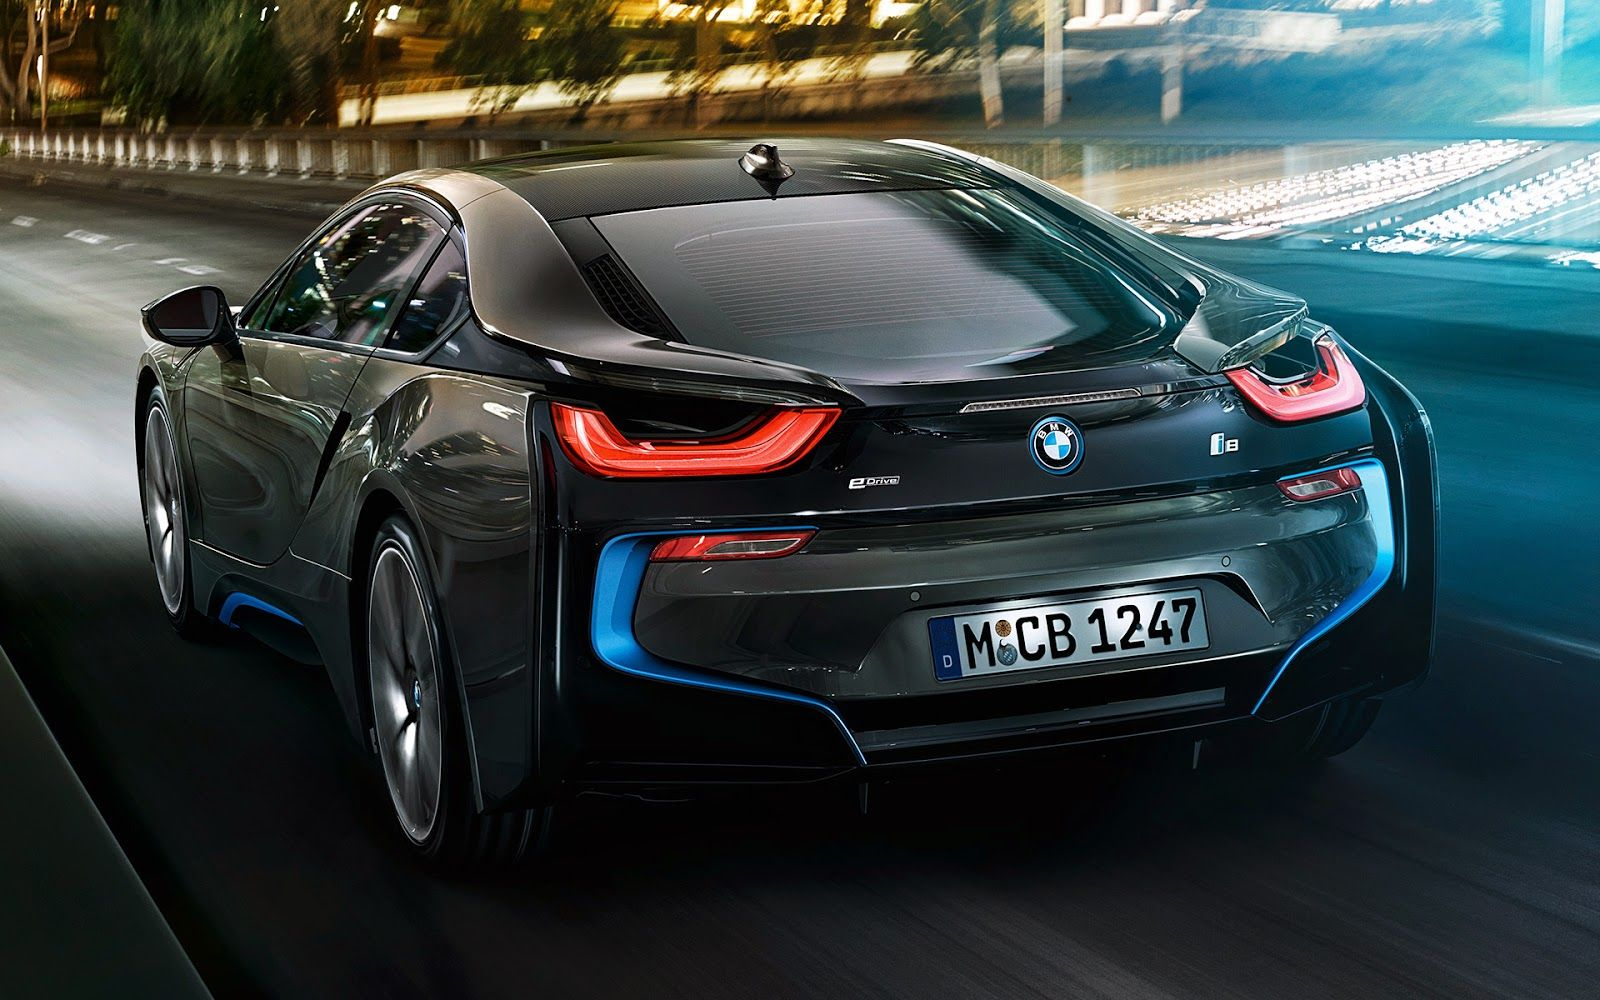 Bmw I8 Edrive Bmw I12 I8 Edrive Coupe Pinterest Bmw I8 Bmw